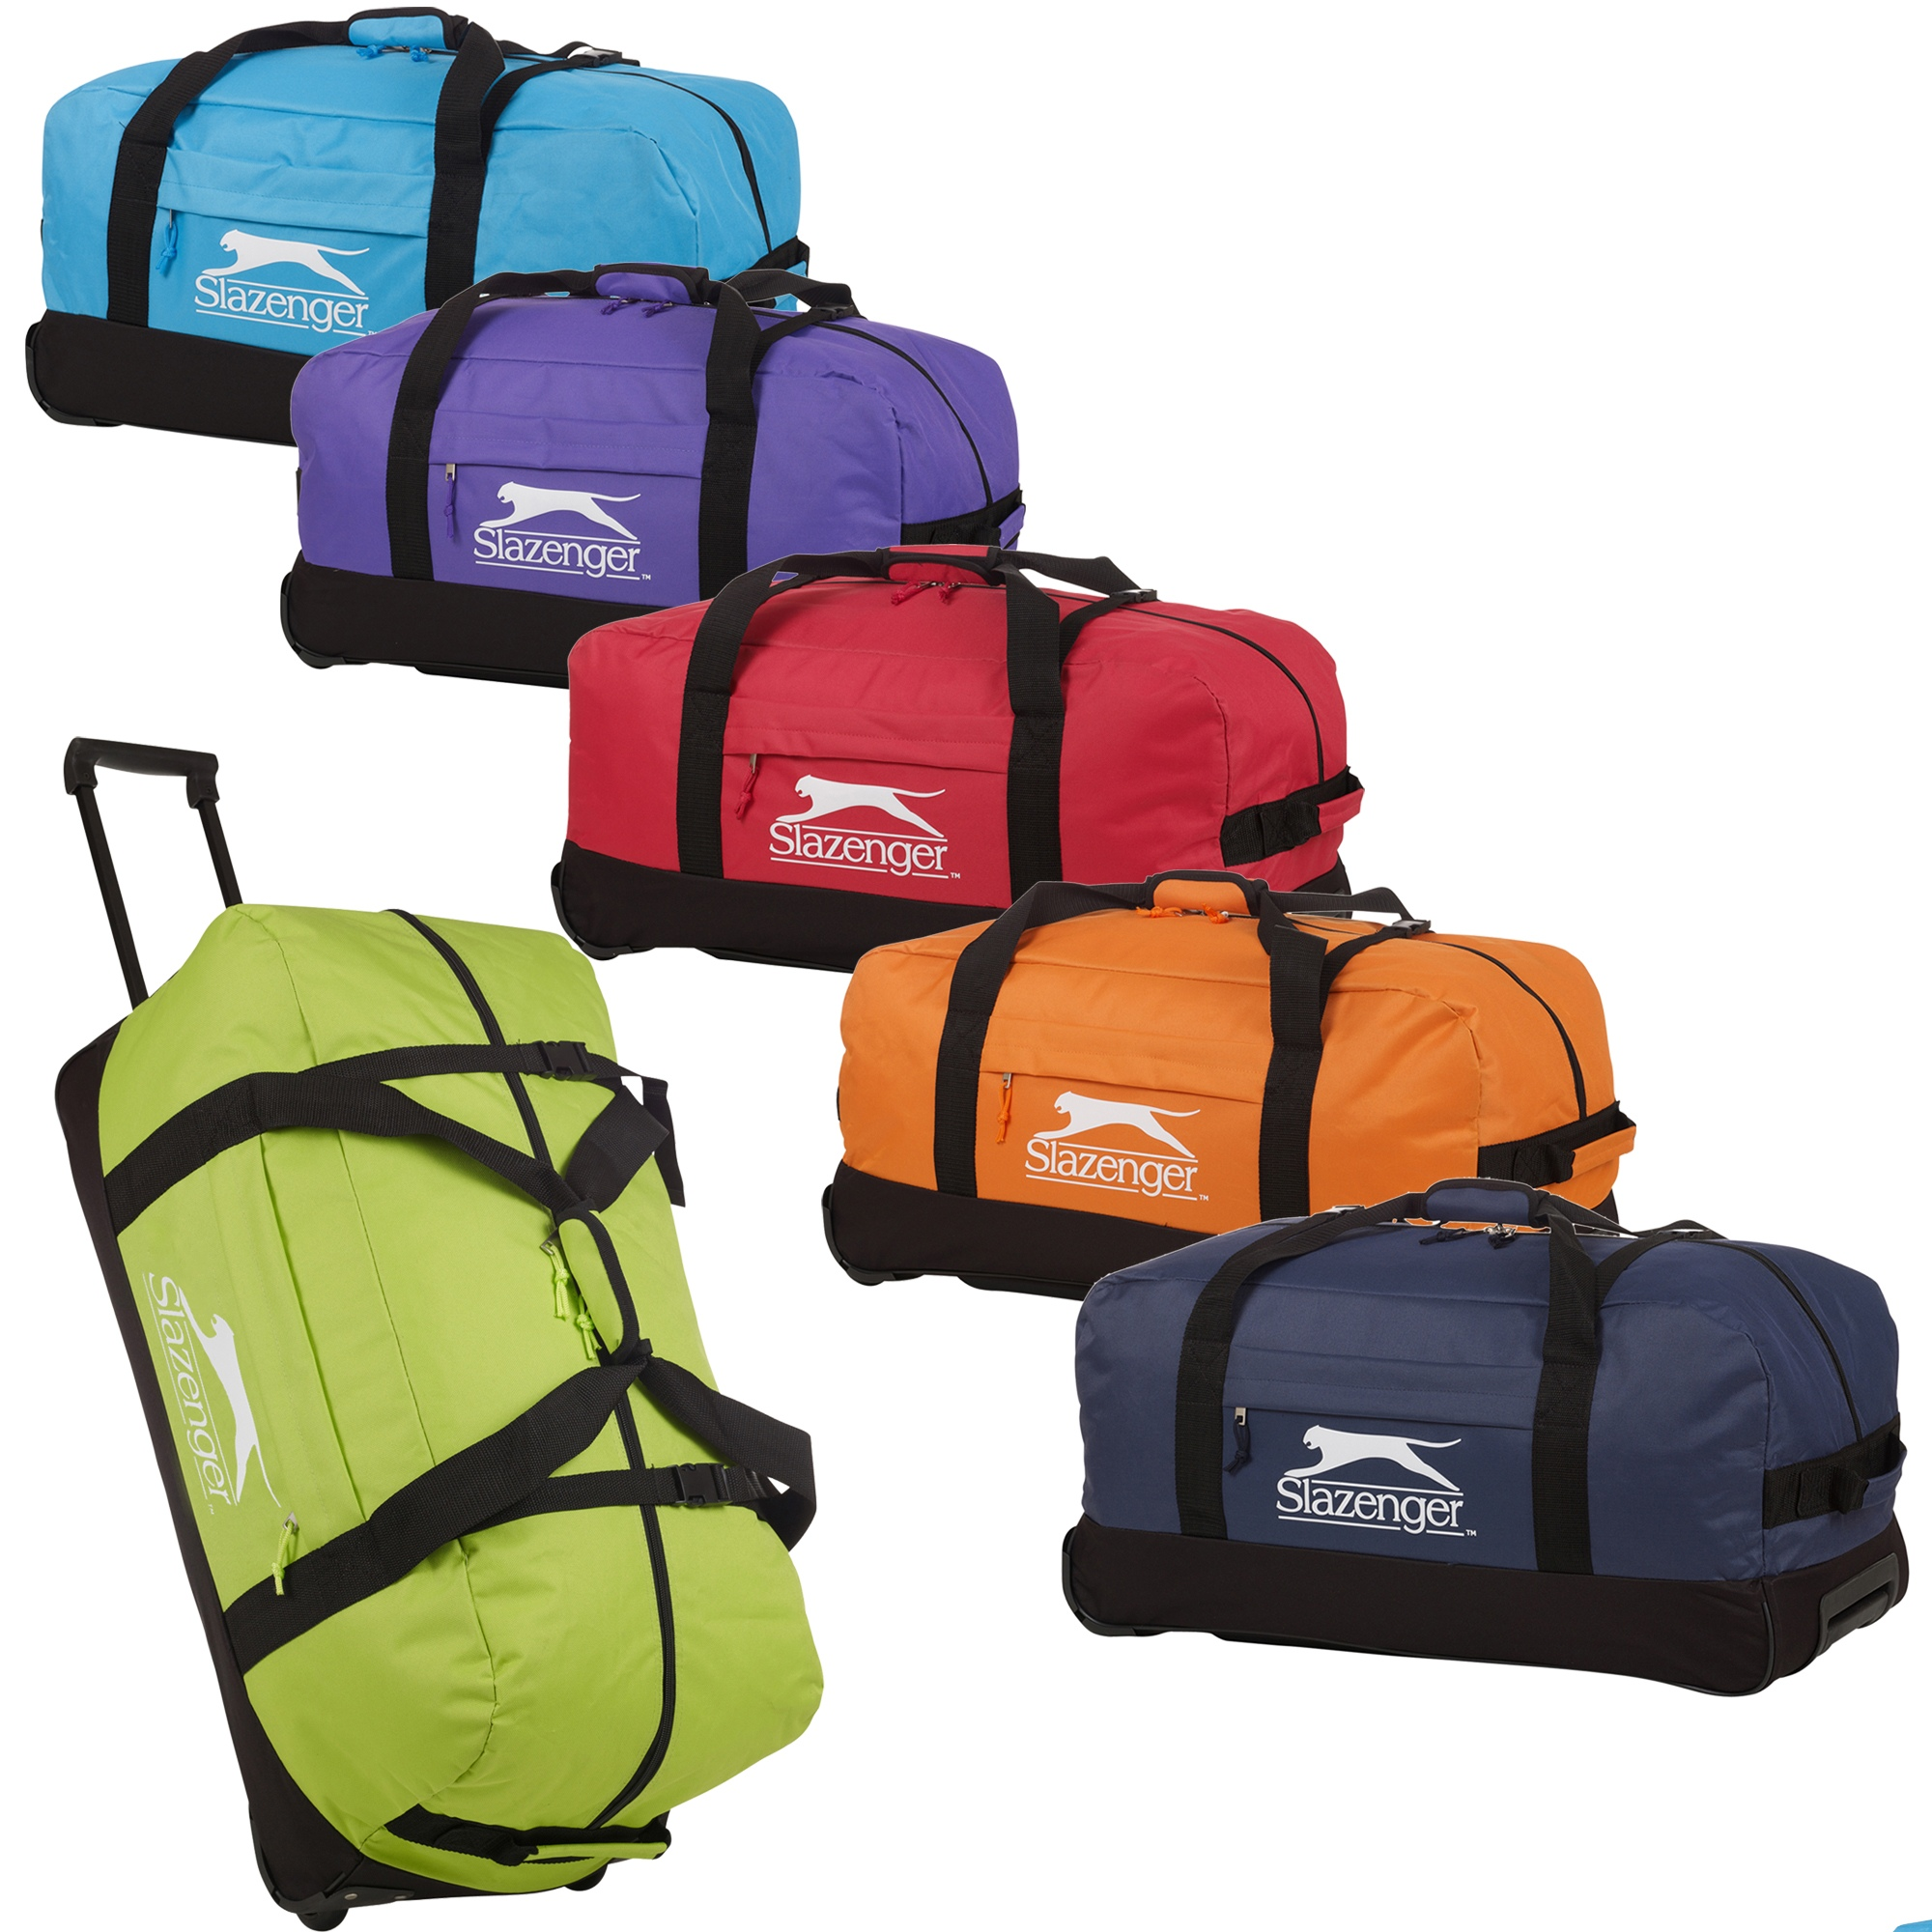 d1e33517ff3 Details about Slazenger Trolley Sports Travel Bag Handle Wheels Luggage  Carry Gym Suitcase New